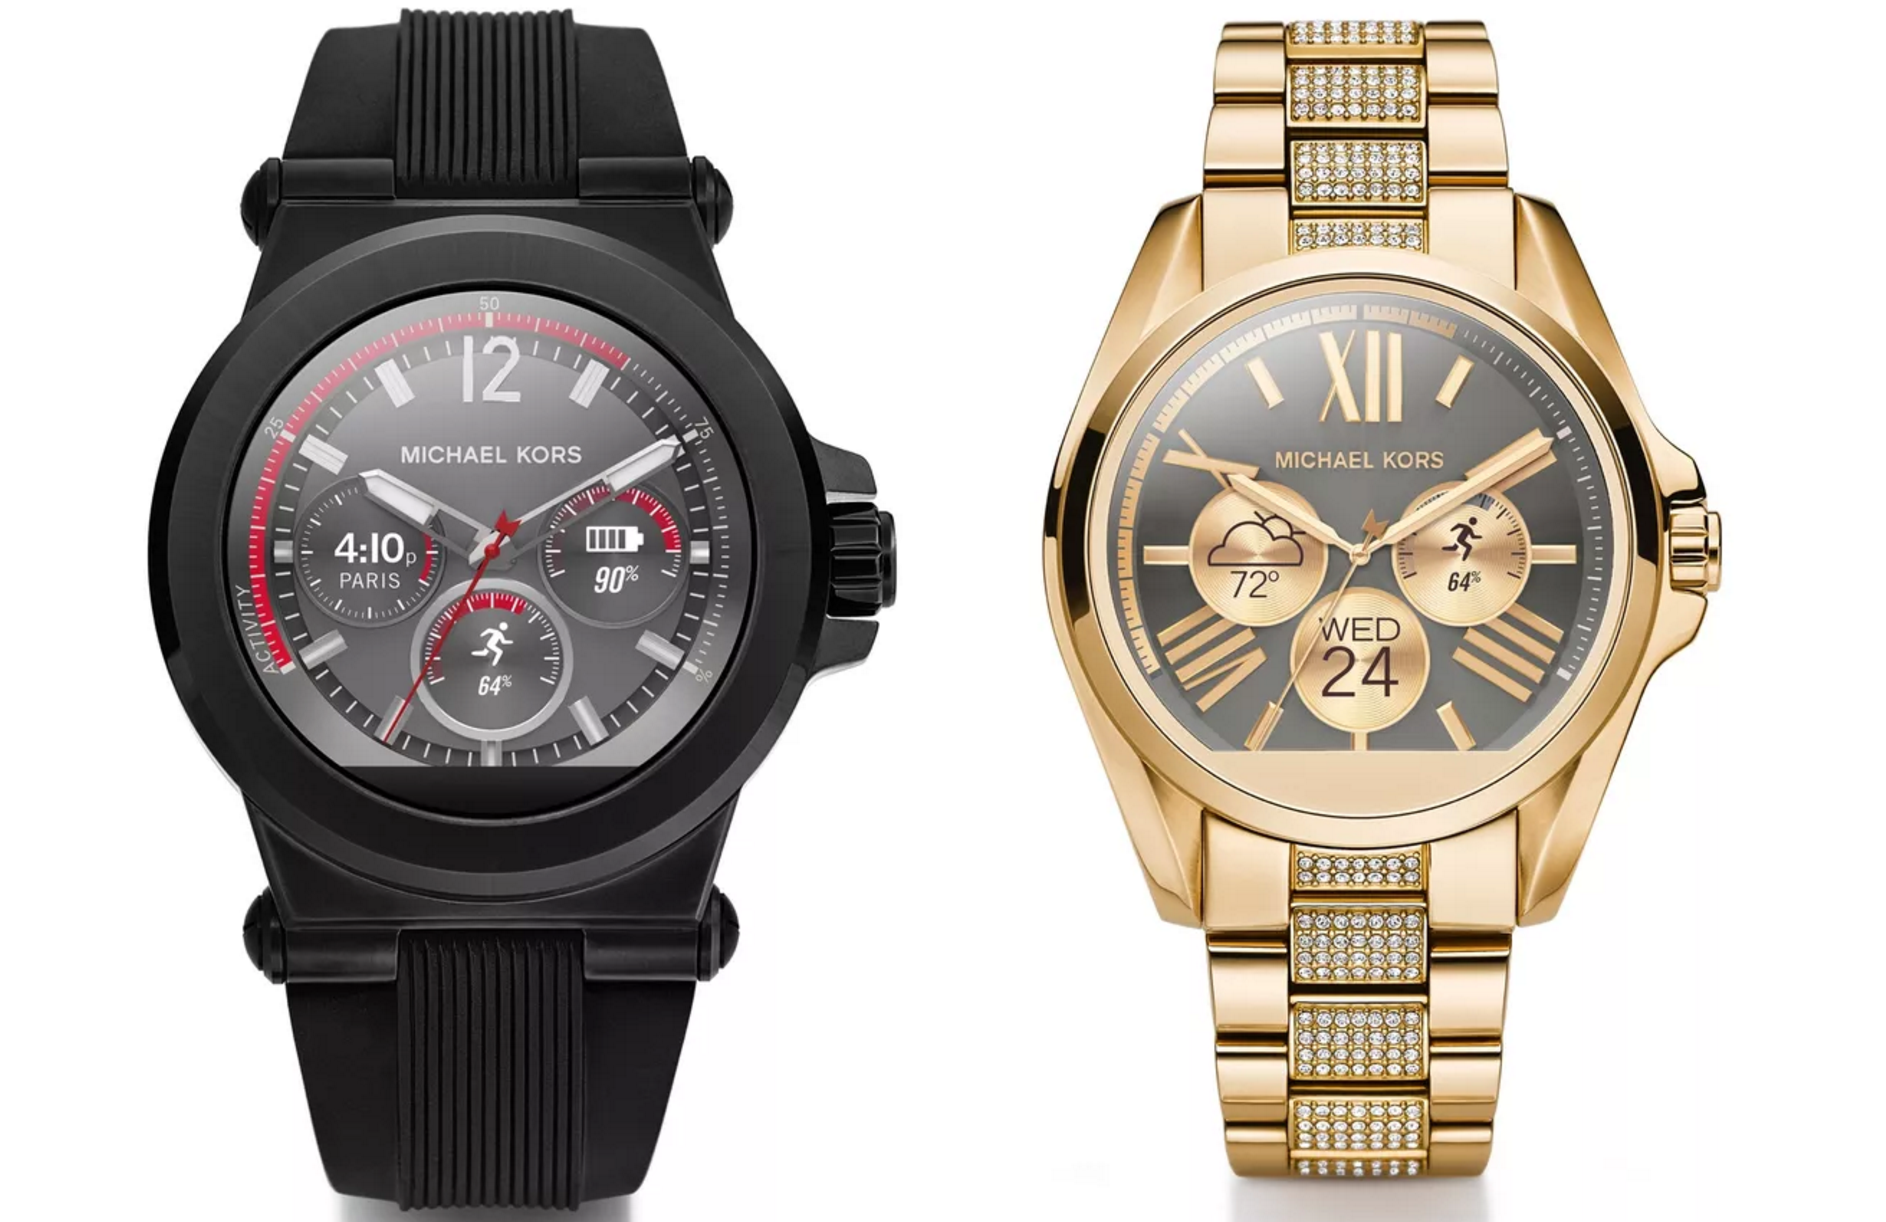 Michael Kors unveils new Android Wear line, Casio s  500 smartwatch ... 3a031c1e14